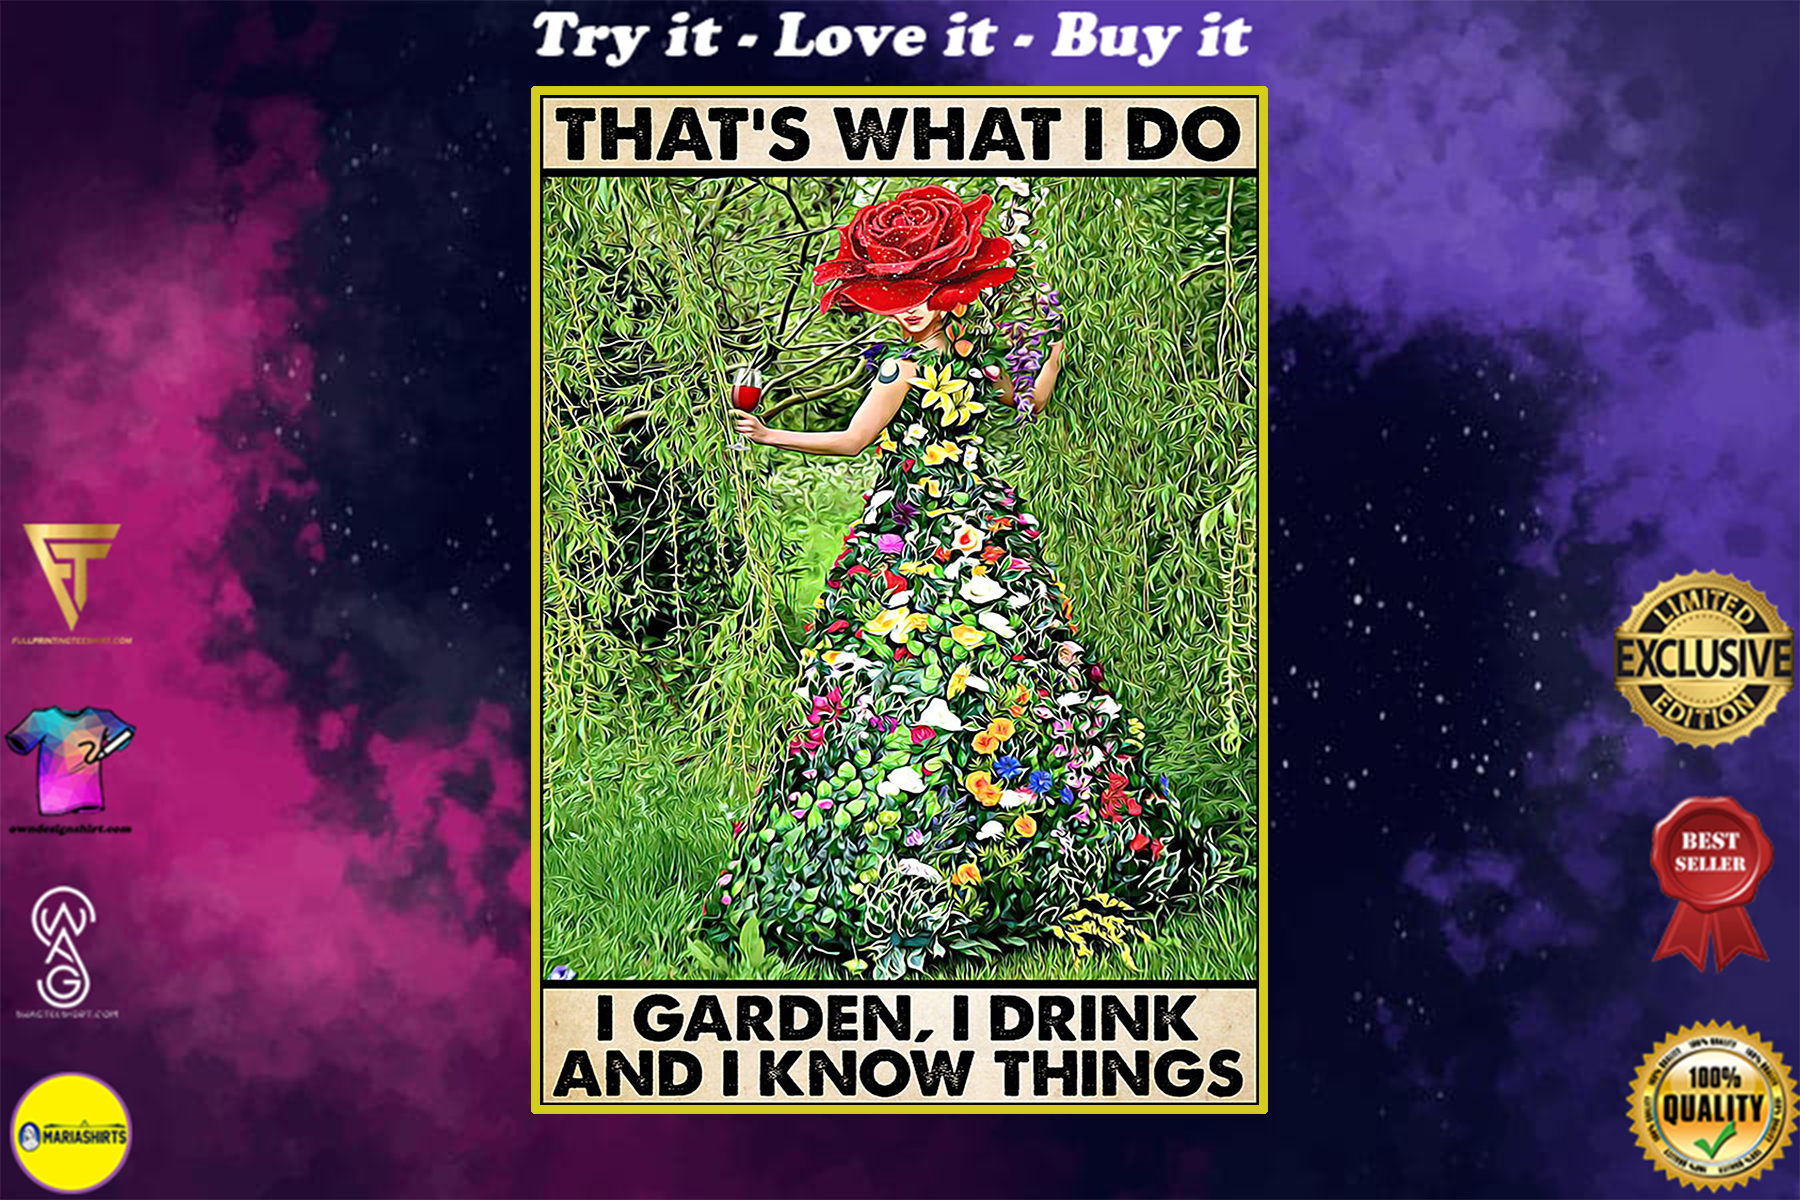 vintage gardening thats what i do i garden i drink and i know things poster